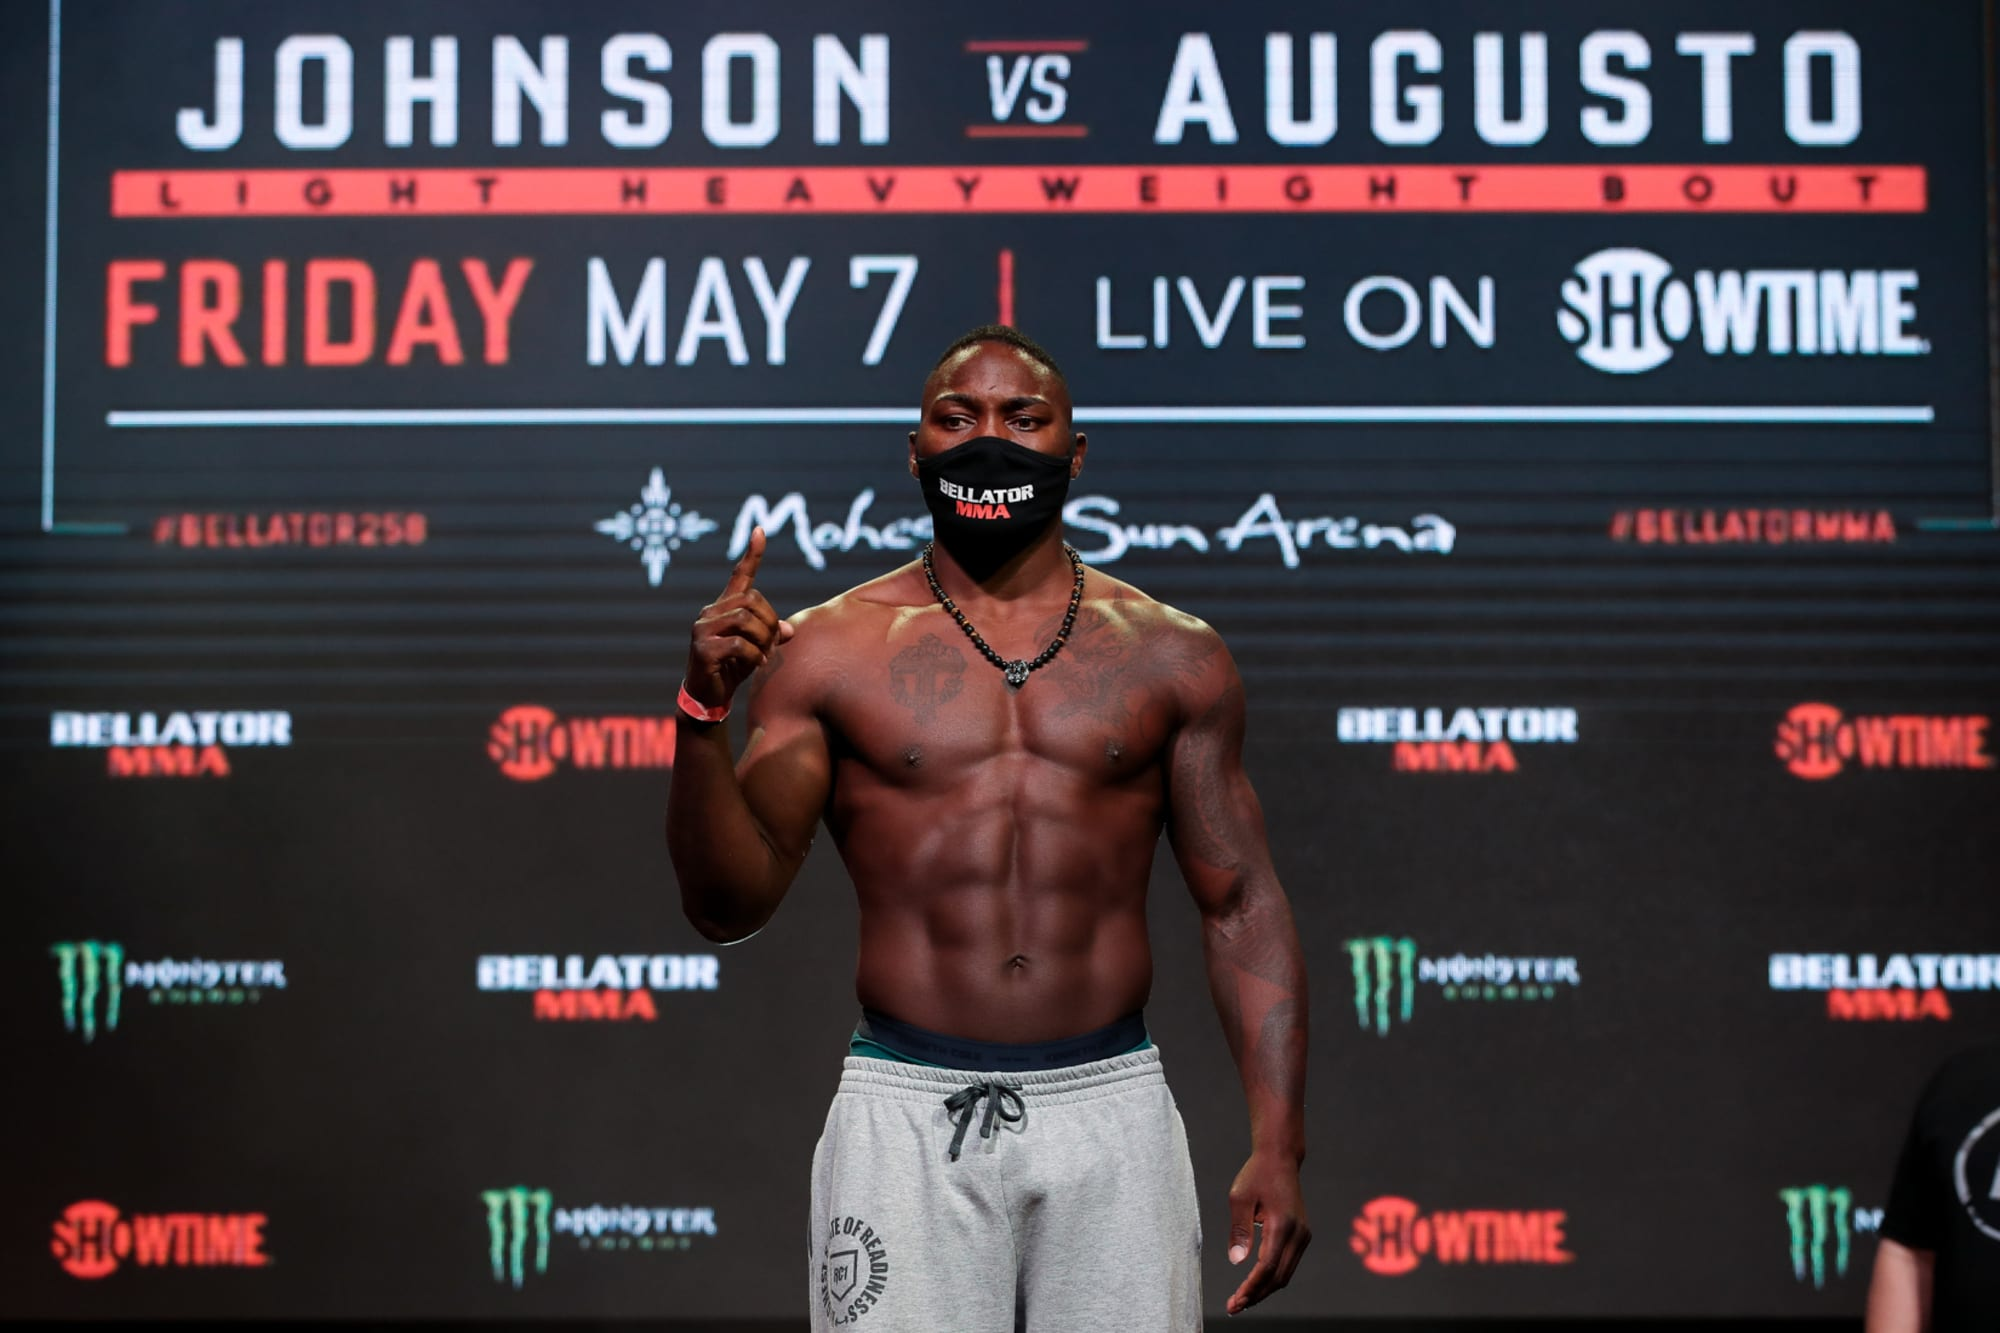 Bellator 258: Anthony Johnson comes from behind to KO Jose Augusto out cold (Video)